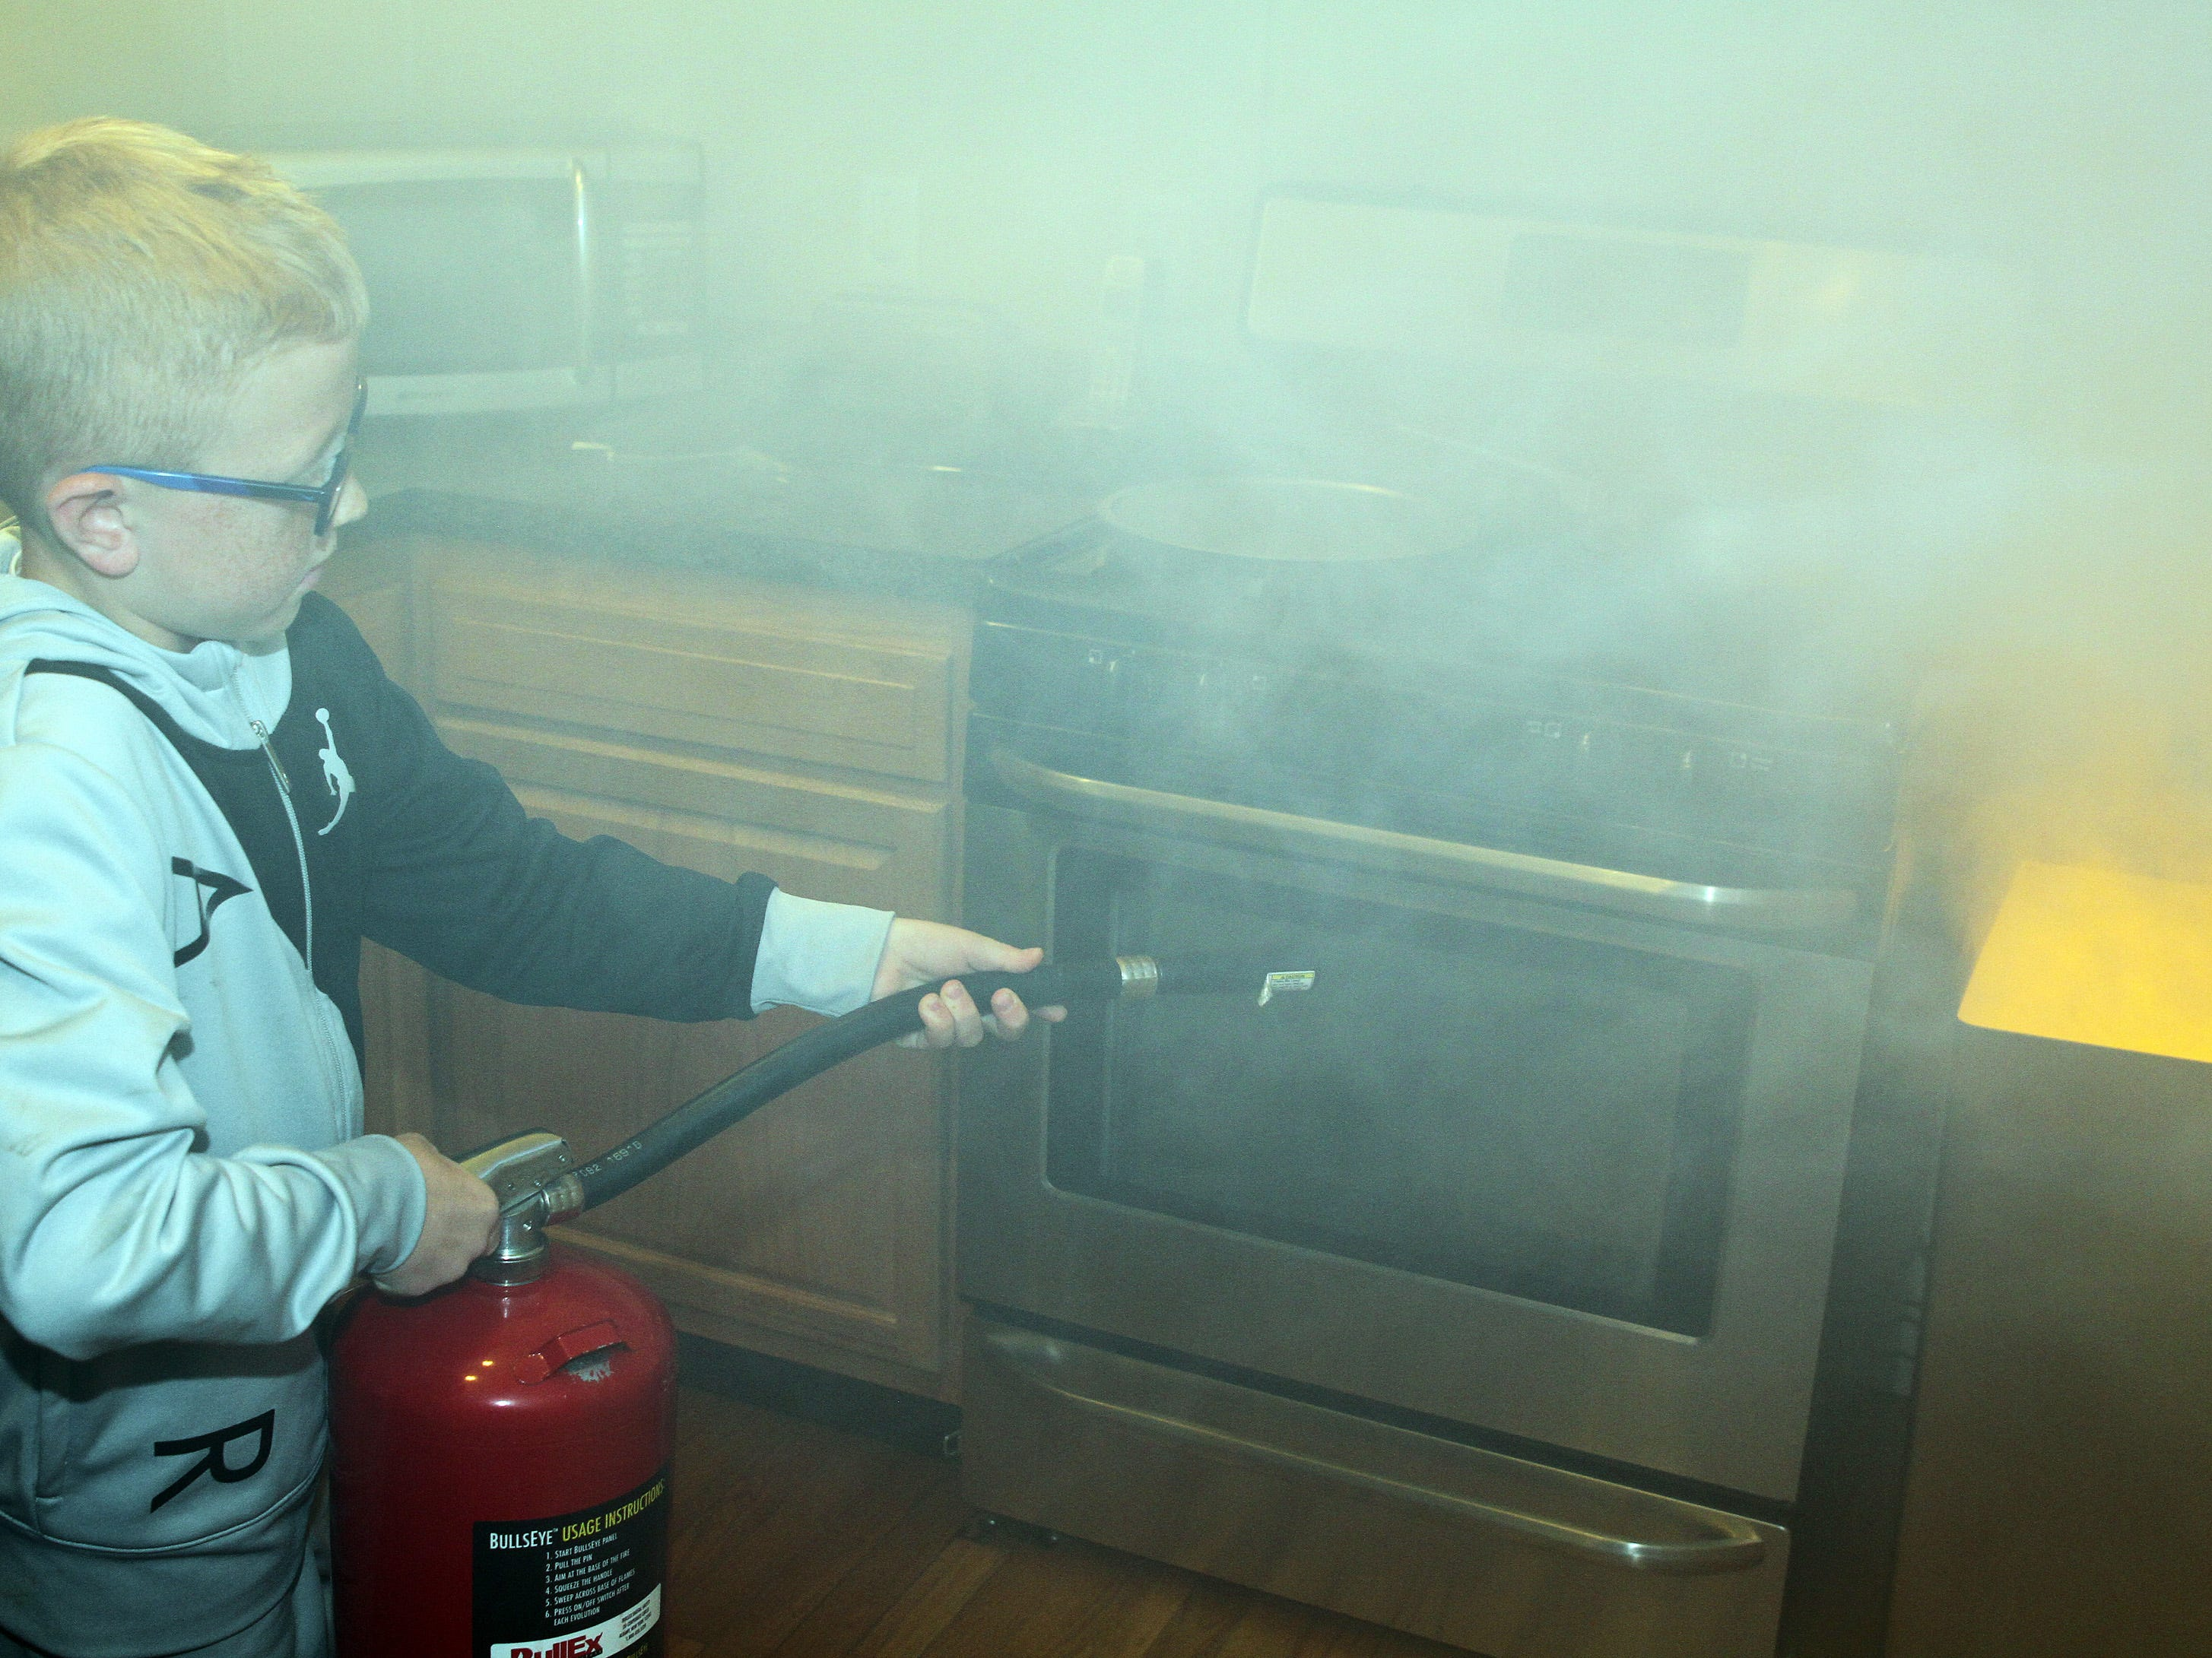 Tate Goche, 8, of Ankeny puts out a kitchen trash can fire in the smoke house during the Ankeny Fire Department's Fire Prevention Week Open House on Wednesday, Oct. 10, 2018 at Fire Station #1, 120 N.W. Ash Dr in Ankeny. The Open House includes a variety of educational, family-oriented hands-on activities for all ages. Residents can learn more about the power of fire prevention and technologies available to protect their own families from fire.